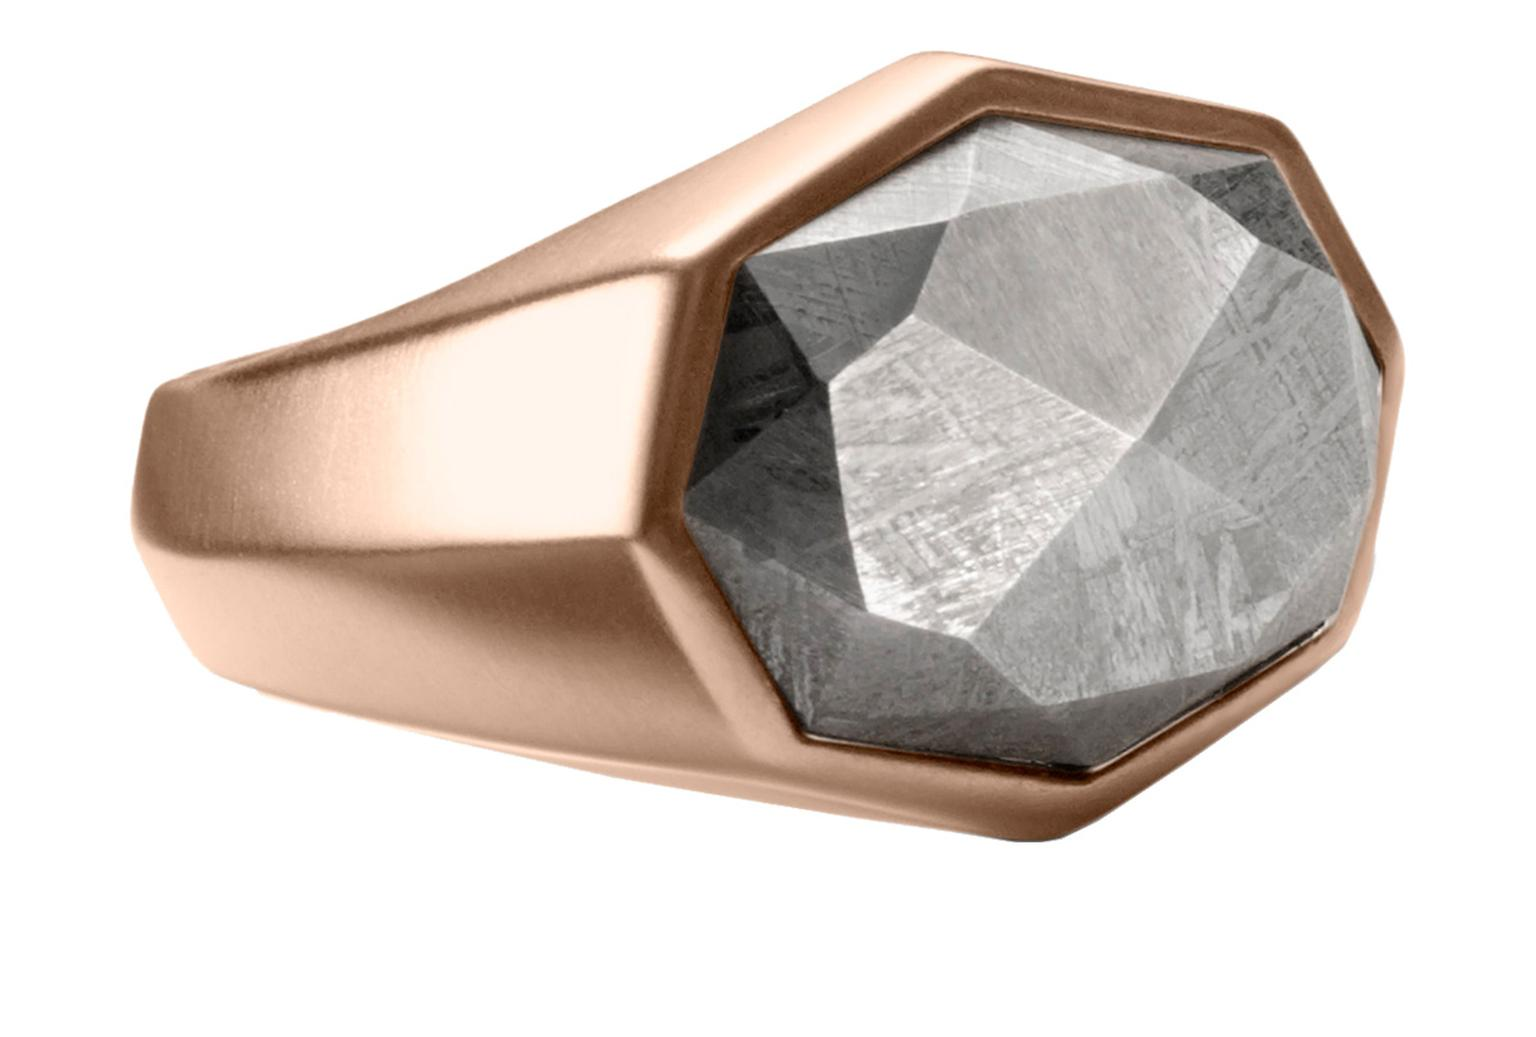 David Yurman Meteorite Faceted Statement Ring_20131003_Zoom